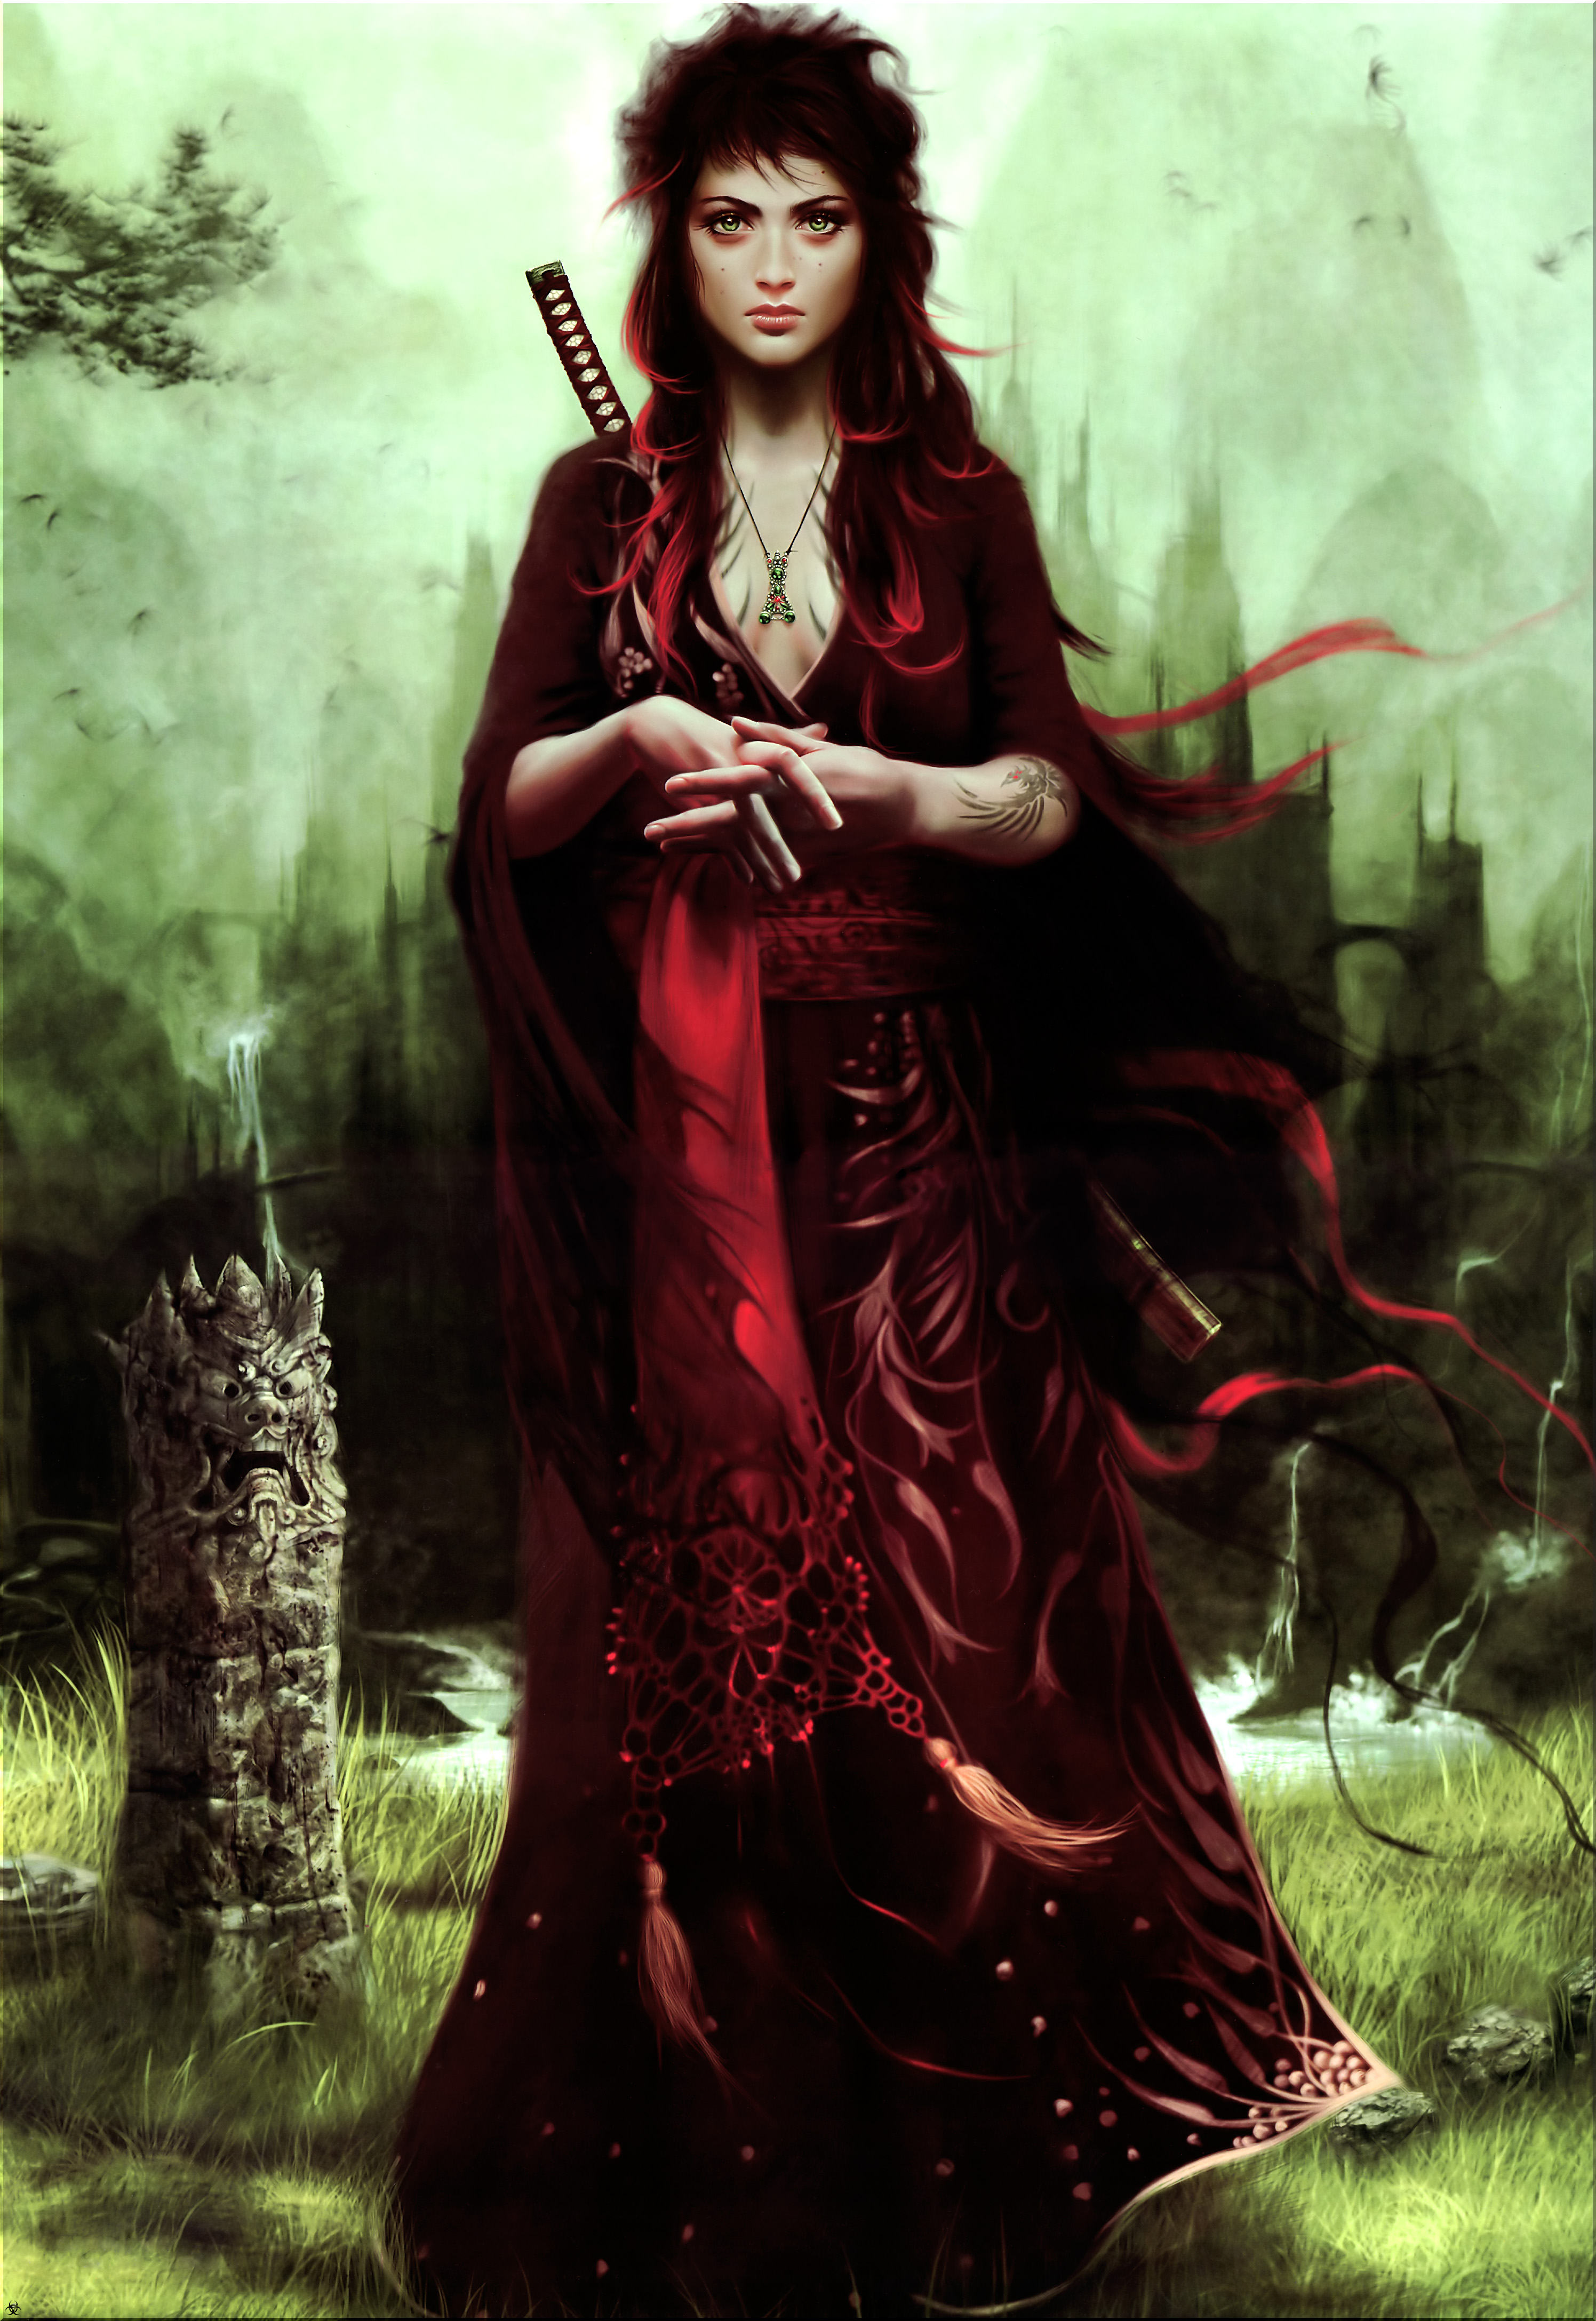 Redheads Green Eyes Fantasy Art Robes Red Dress Artwork Necklaces Free Wallpaper Wallpaperjam Com